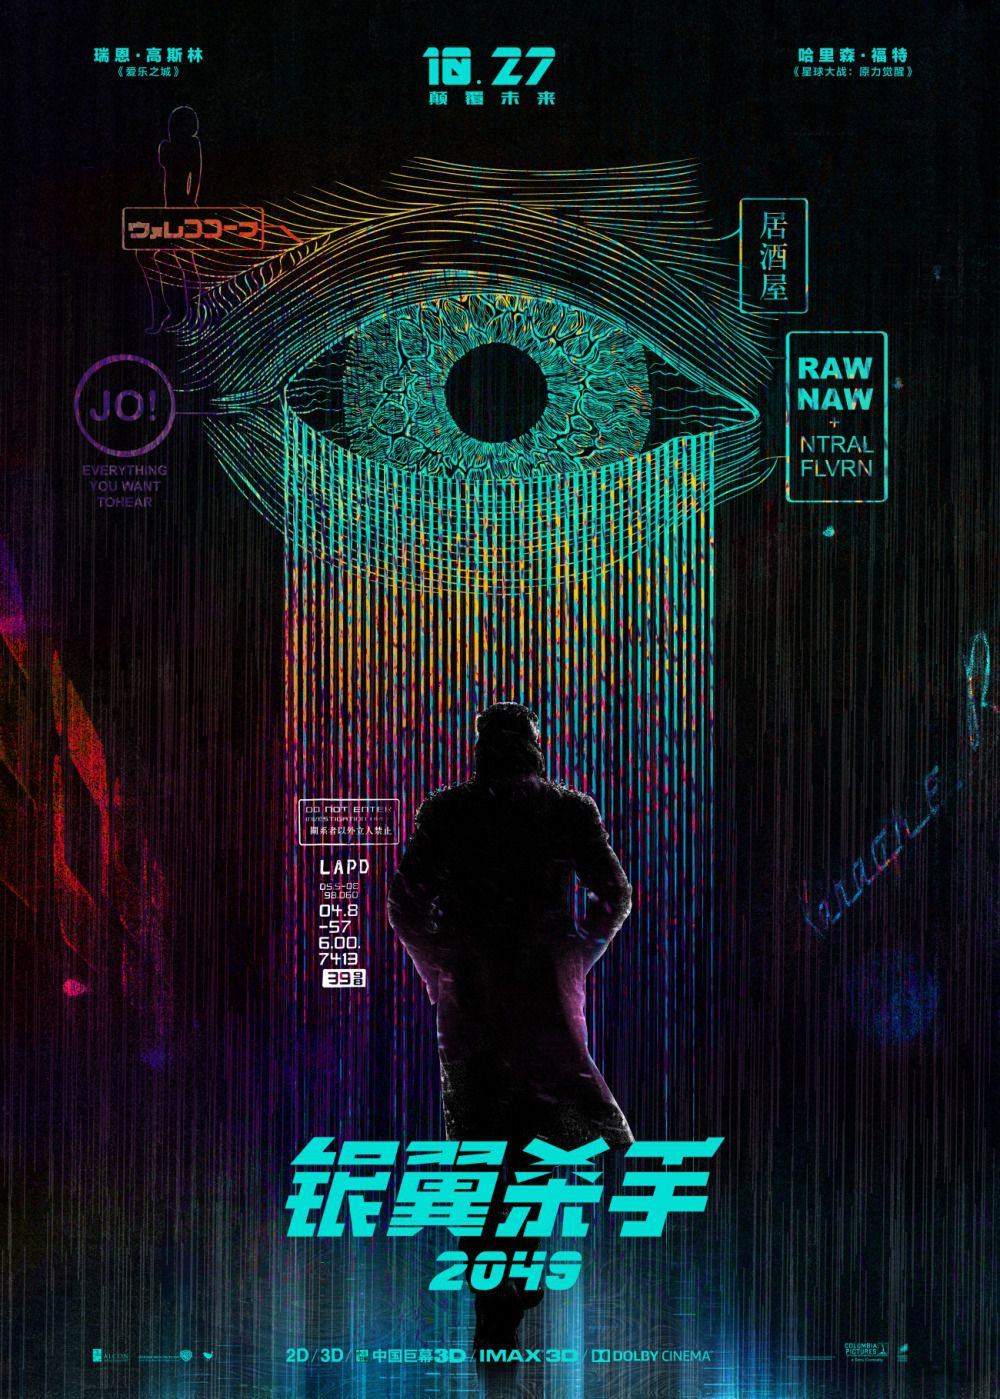 Blade Runner 2 by Denis Villeneuve - Harrison Ford, Ryan Gosling, Robin Wright, Dave Bautista